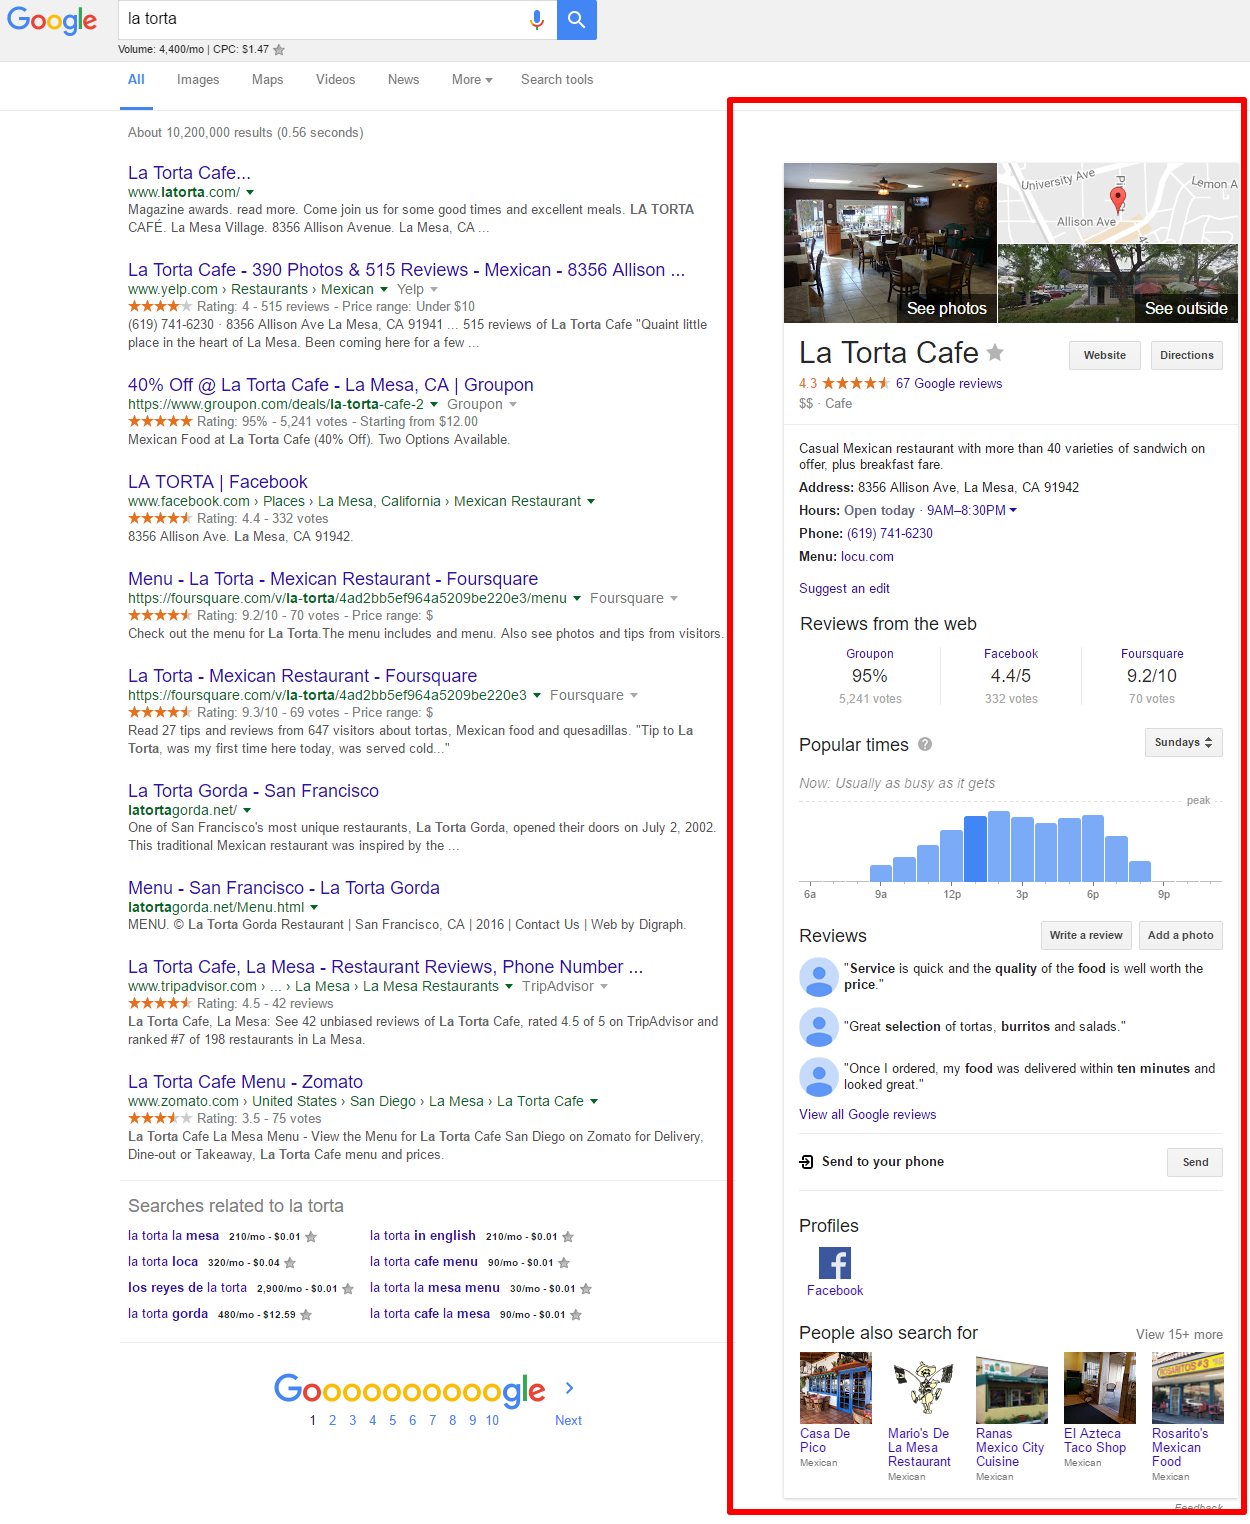 What a Google My Business listing looks like on Google: the business gets a lot of space on a search engine results page!